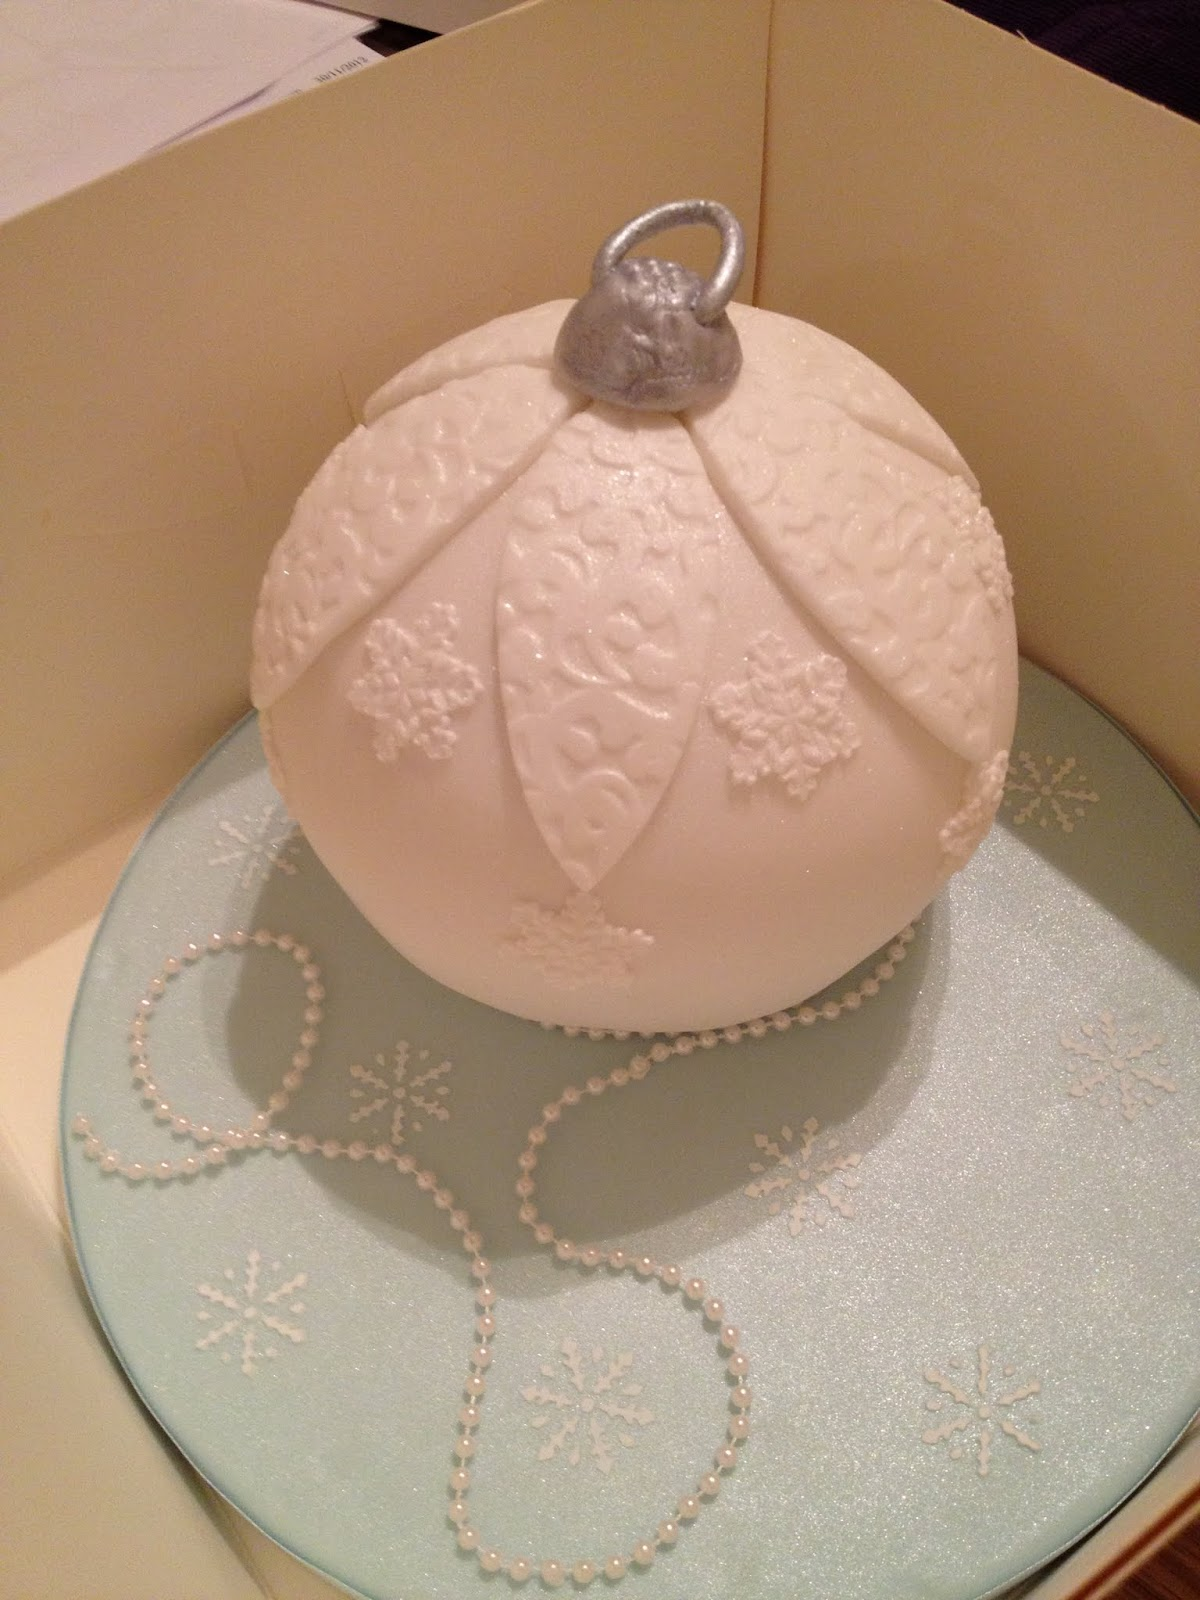 Christmas Bauble Cake Images : Vintage Inspired Christmas Bauble Cake